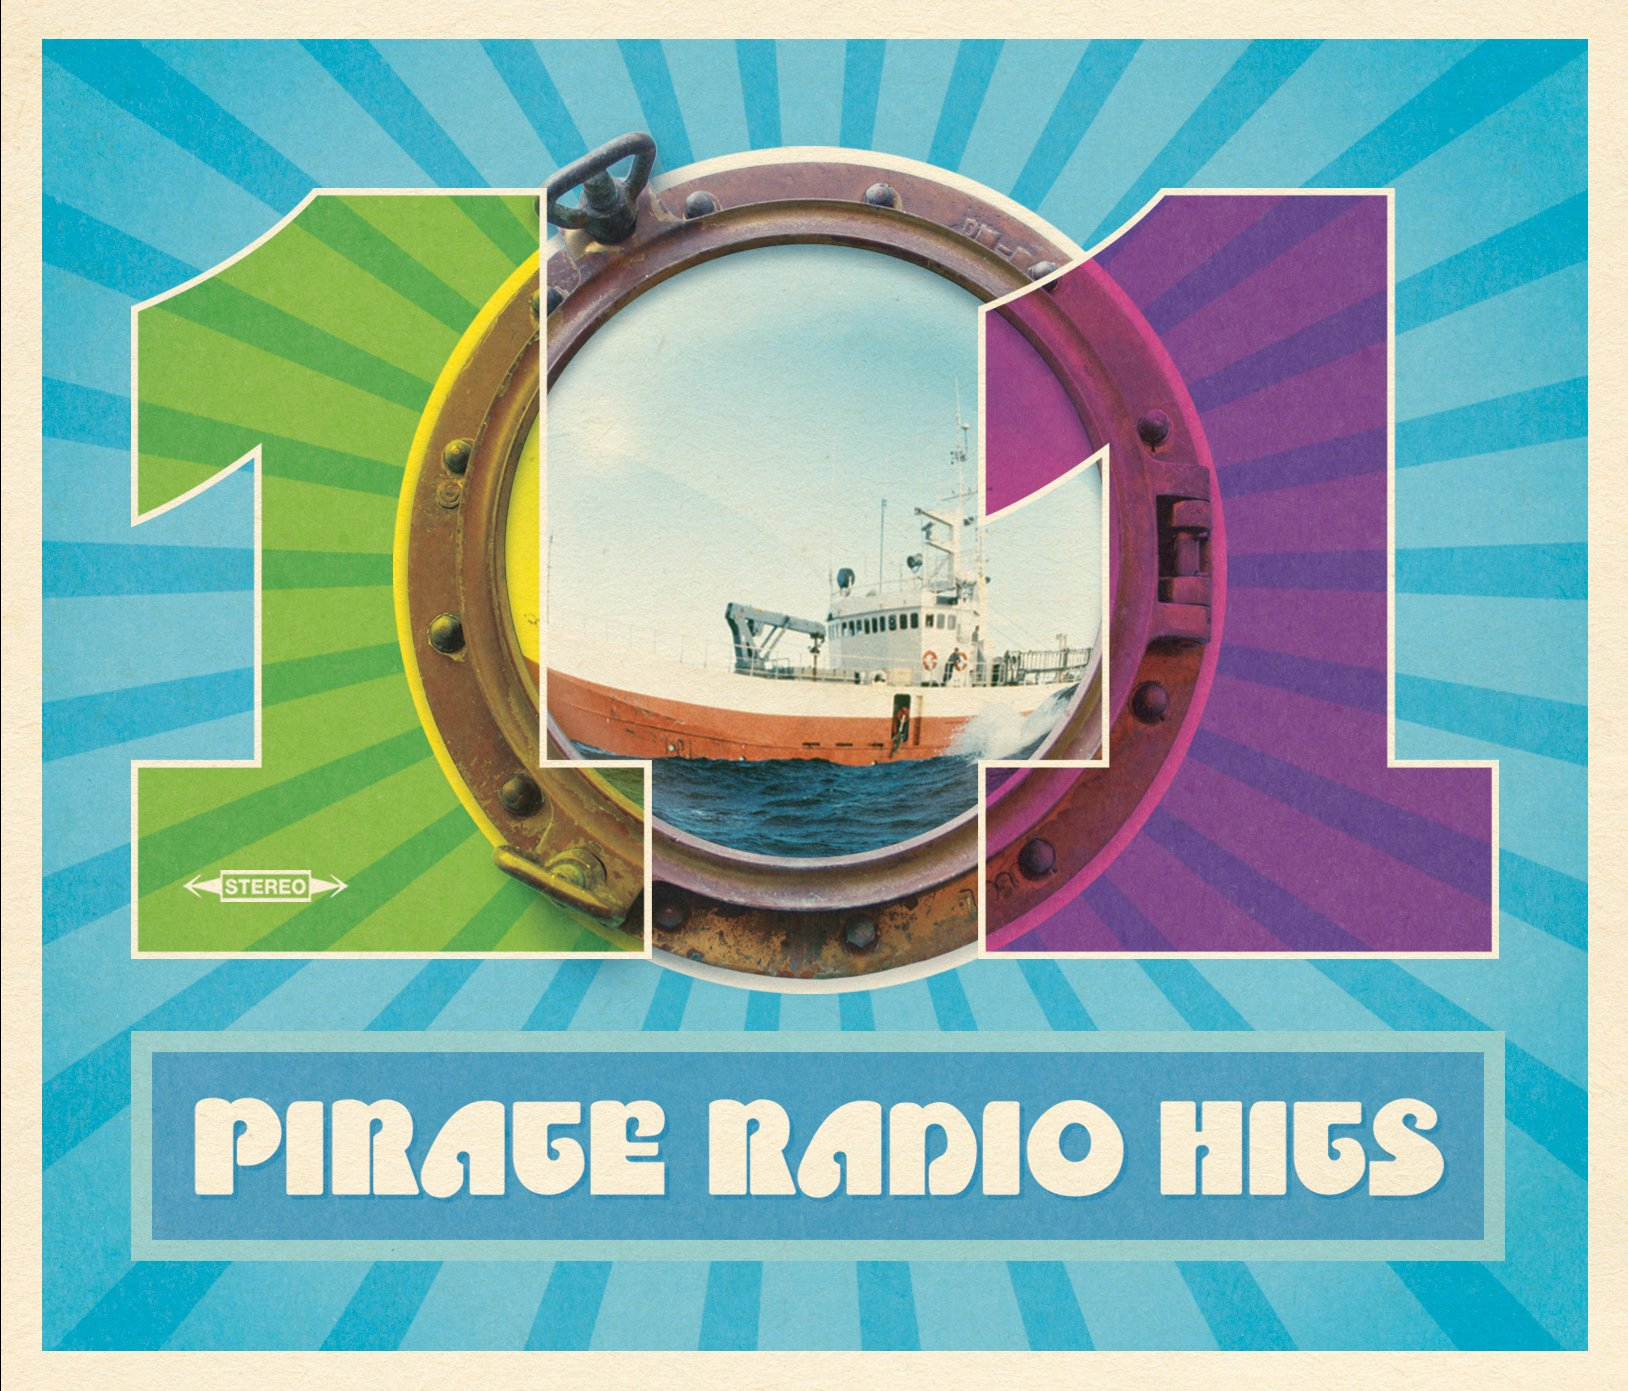 101 Pirate Radio Hits by Unknown